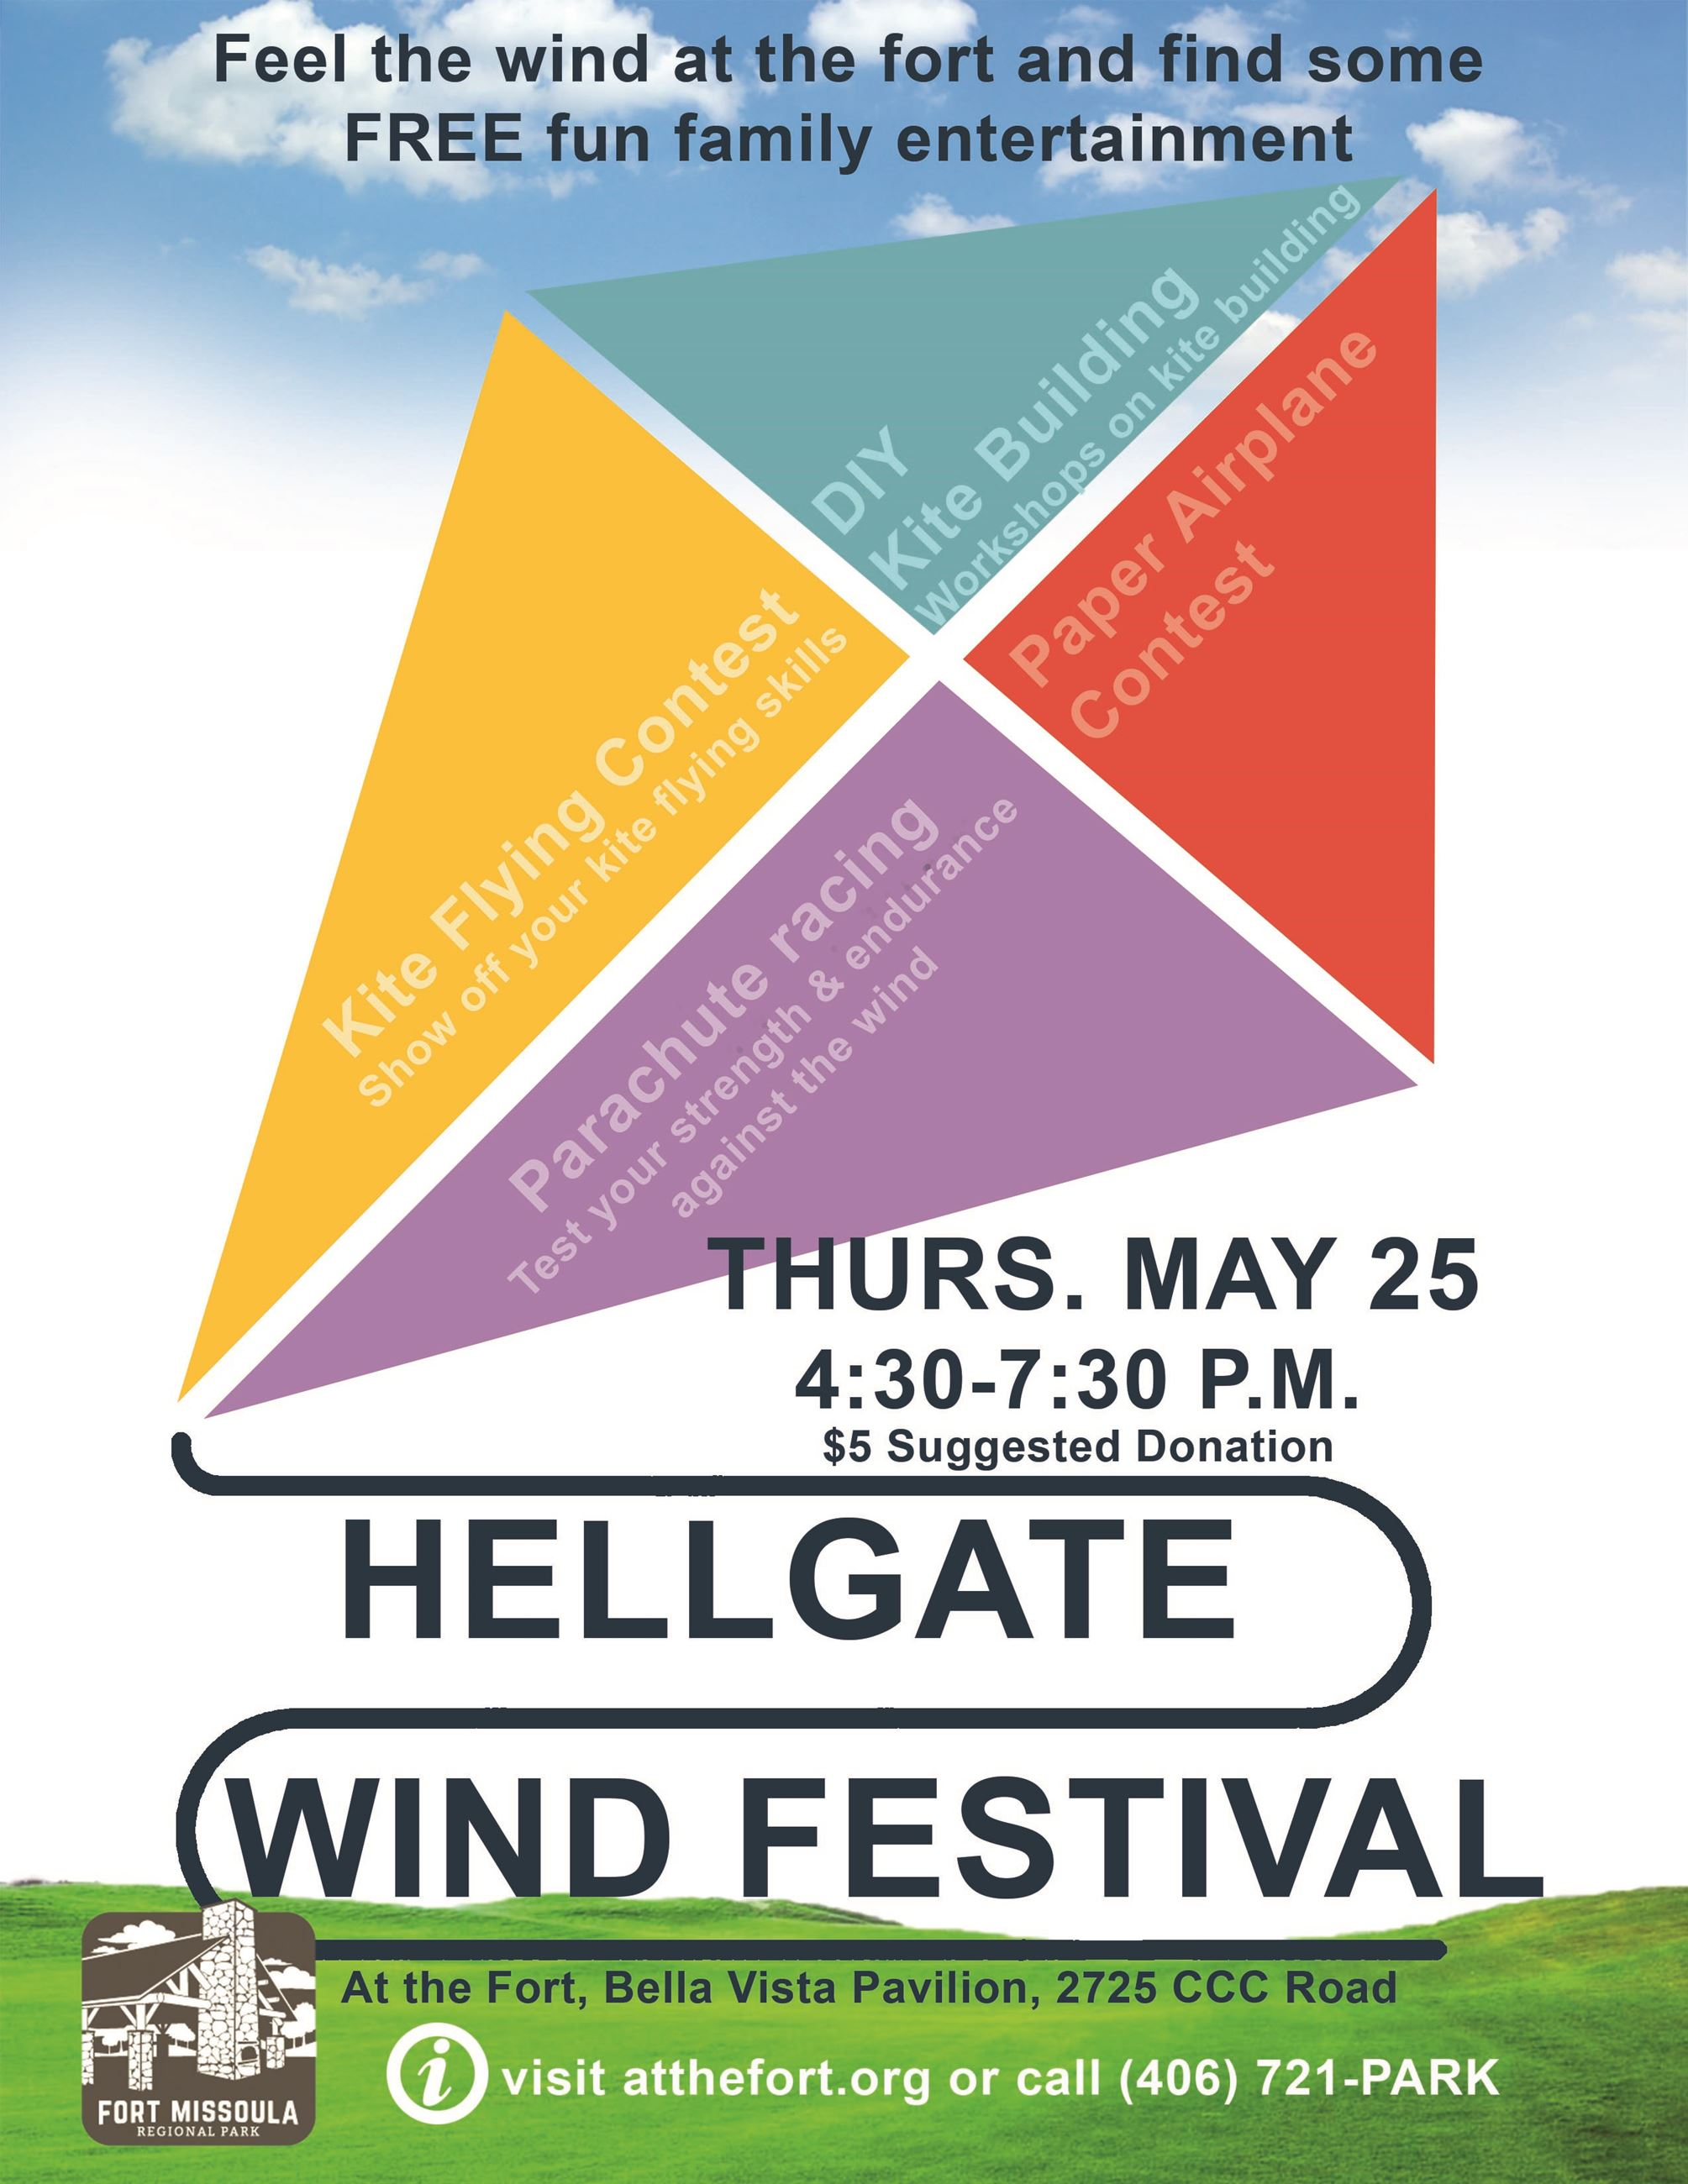 HEllgate wind fest flyer